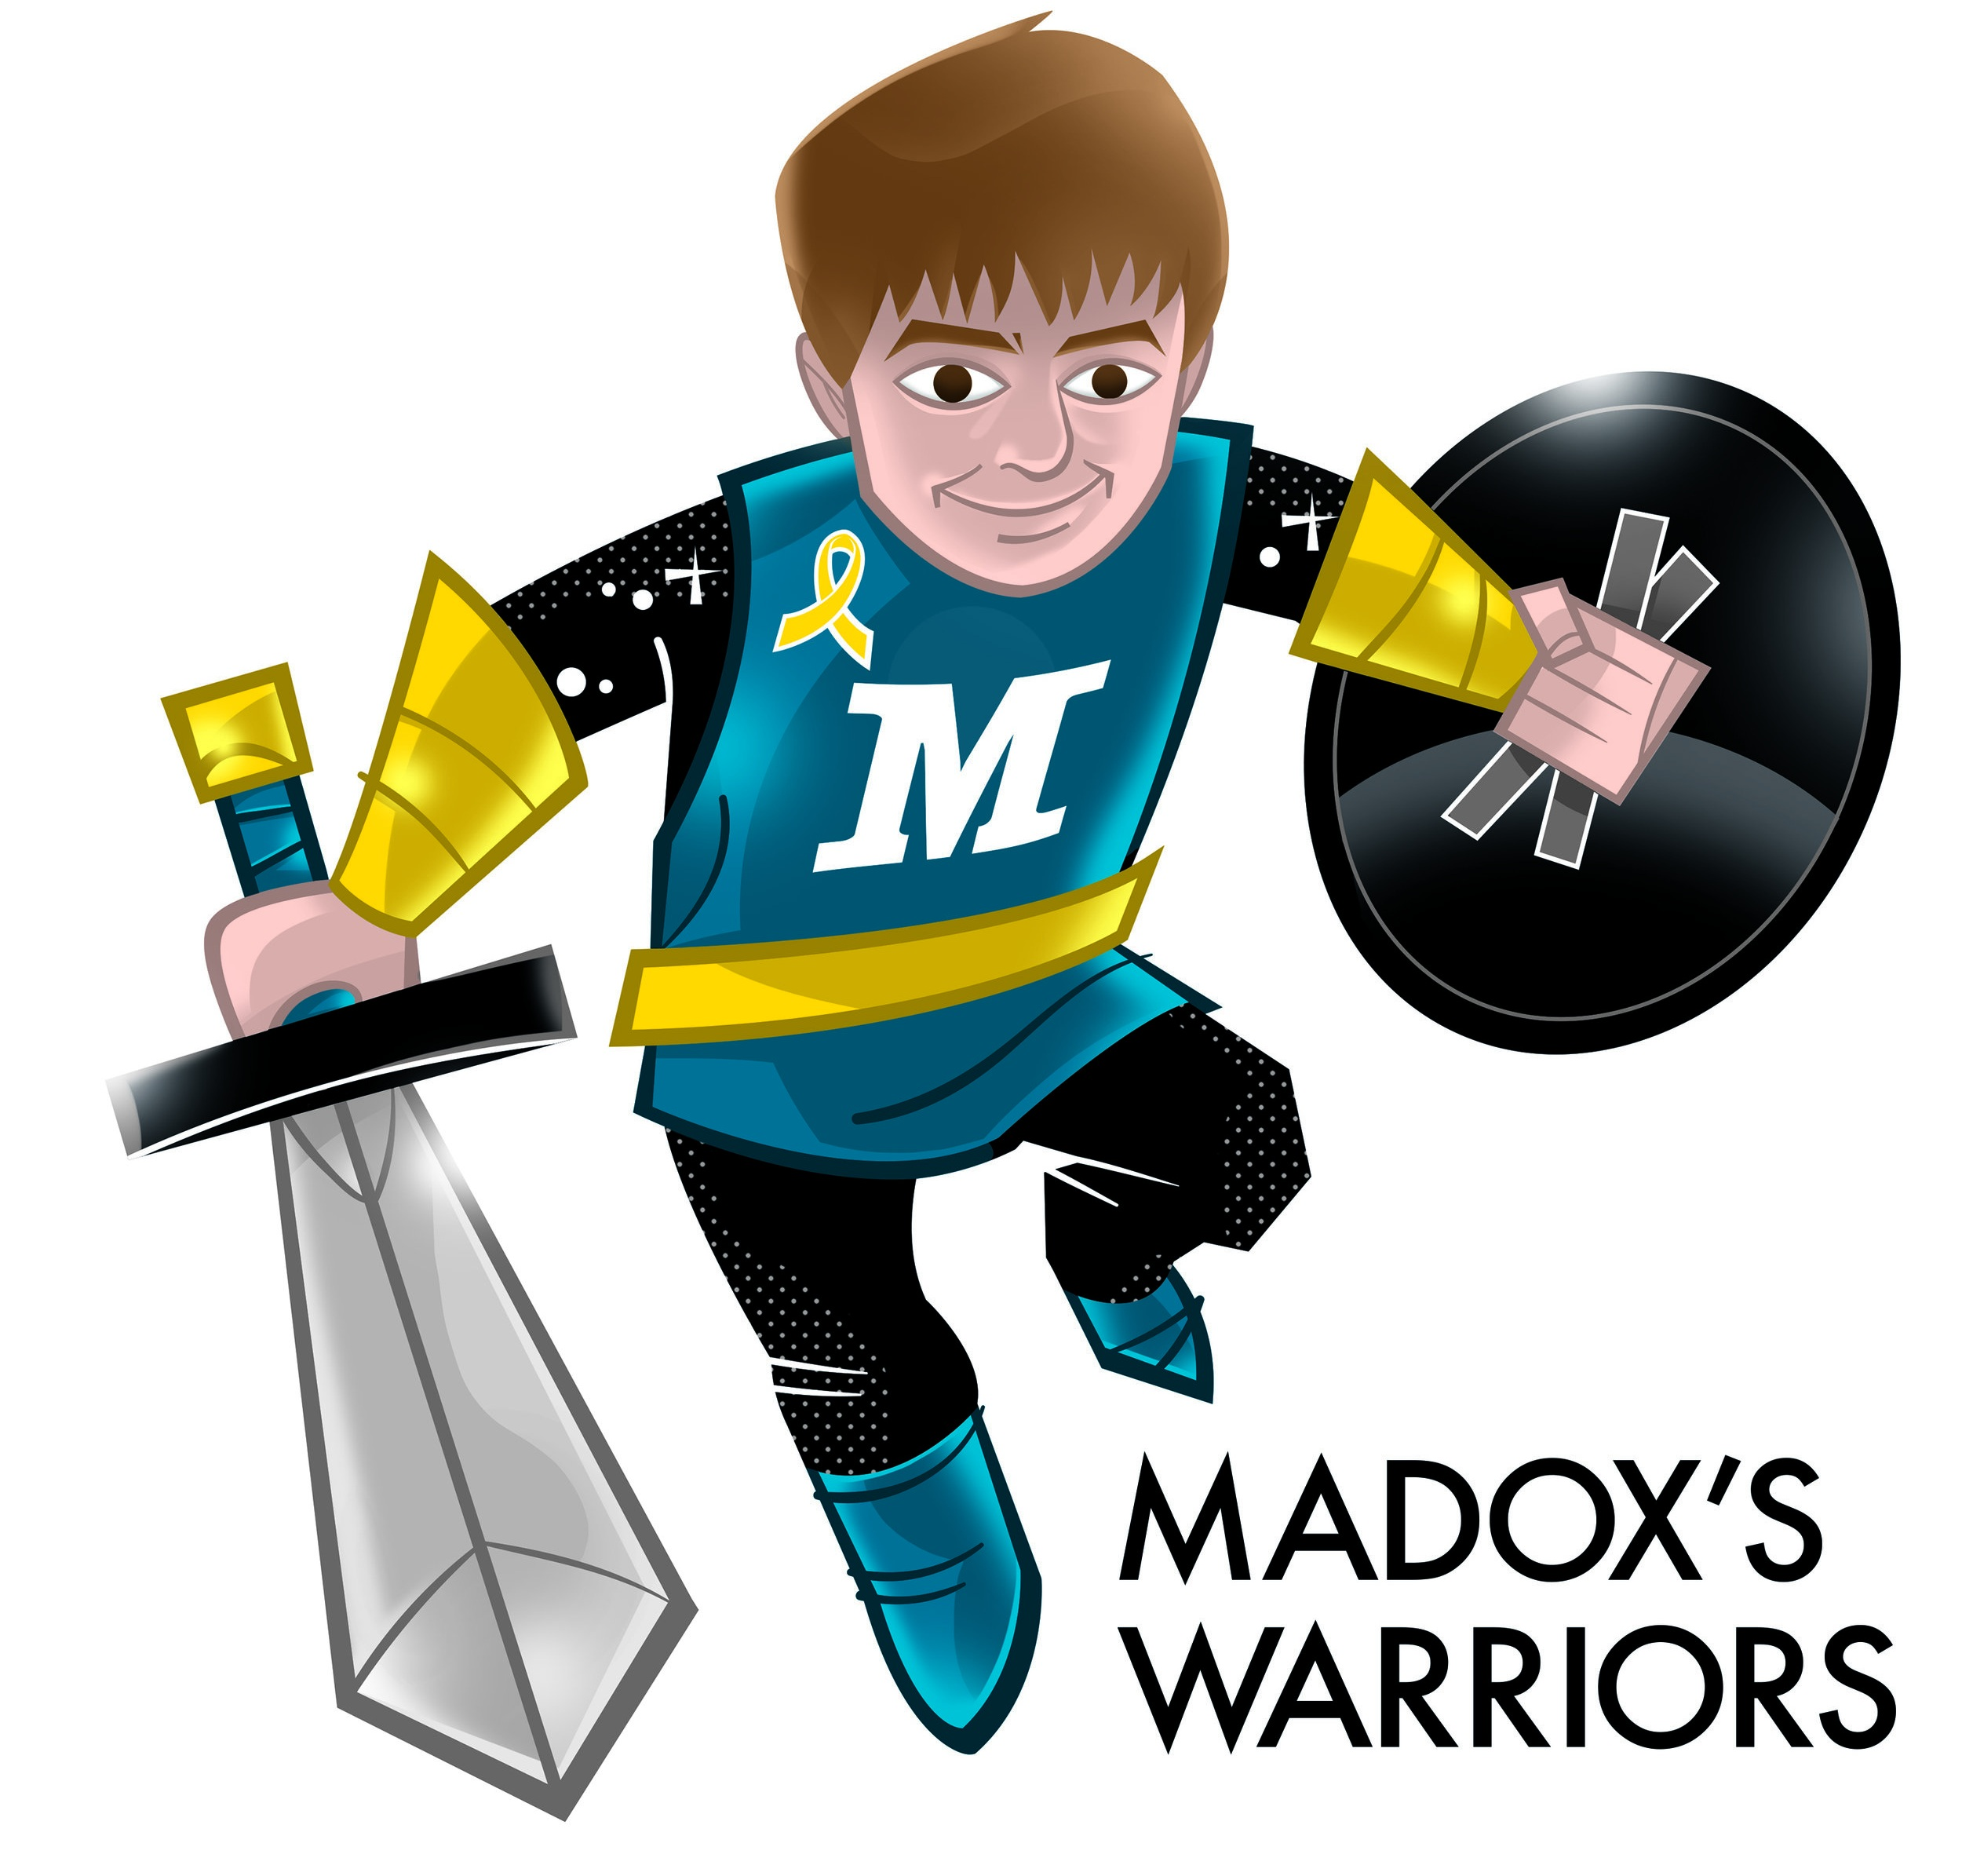 MadoxswarriorsPAINTED_TEXT300.jpg